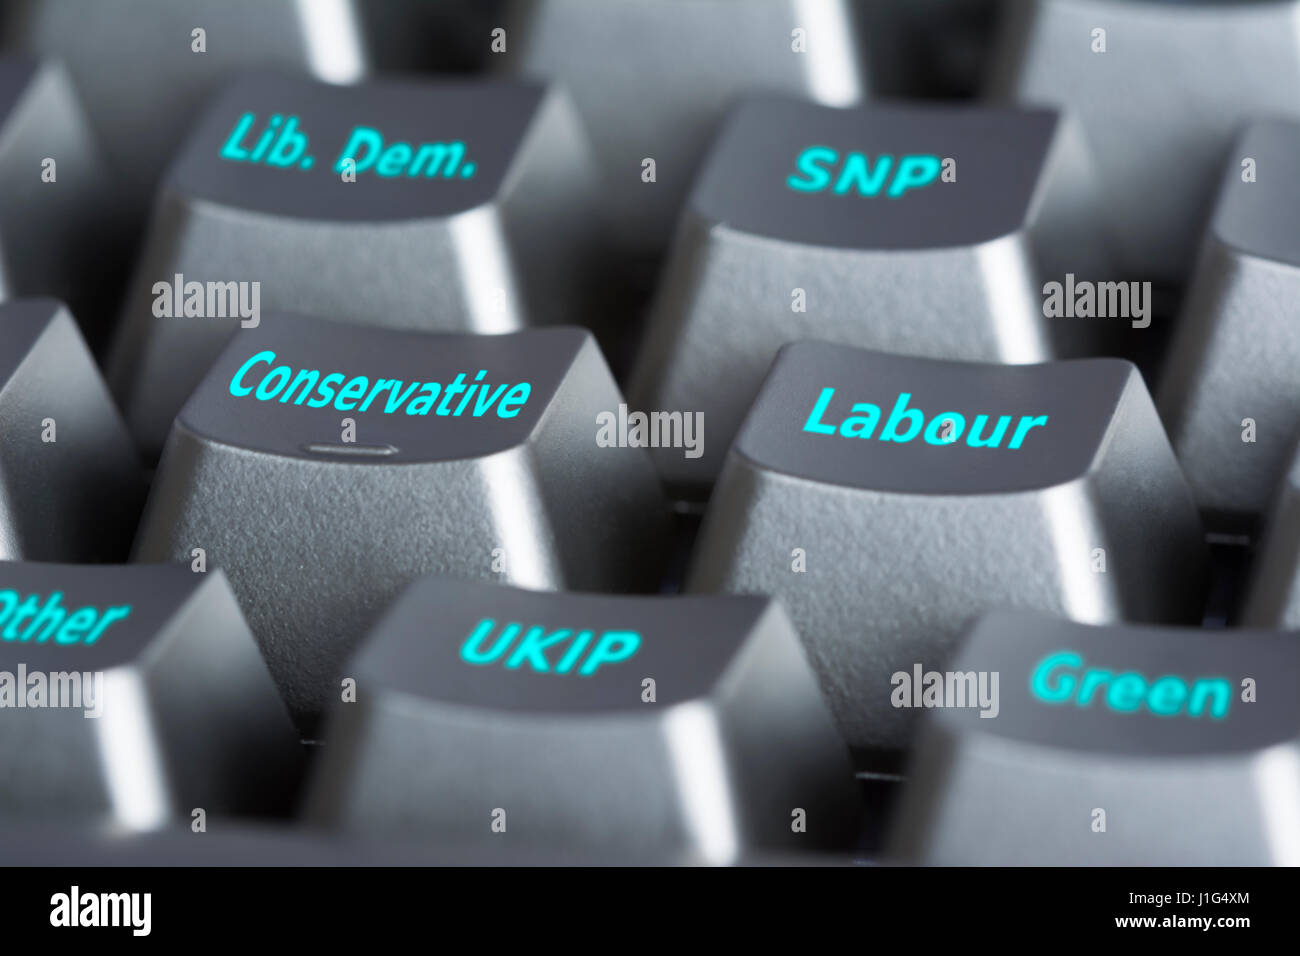 2017 UK general election. Computer keyboard with buttons for casting a vote of a political party in an election - Stock Image